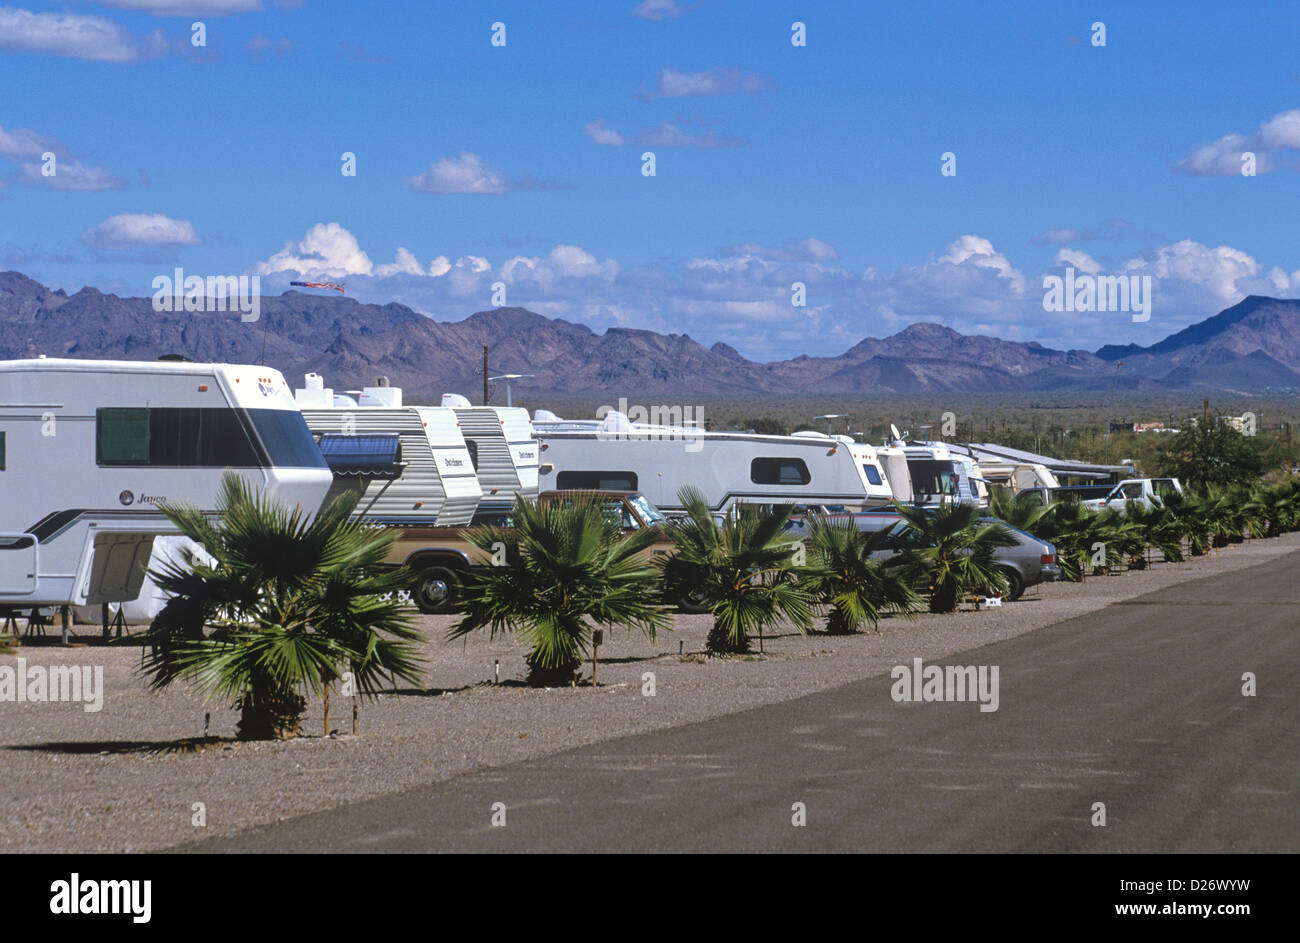 Every winter RV campers swarm to the desert community of Quartzsite, making it the third largest city in Arizona, - Stock Image